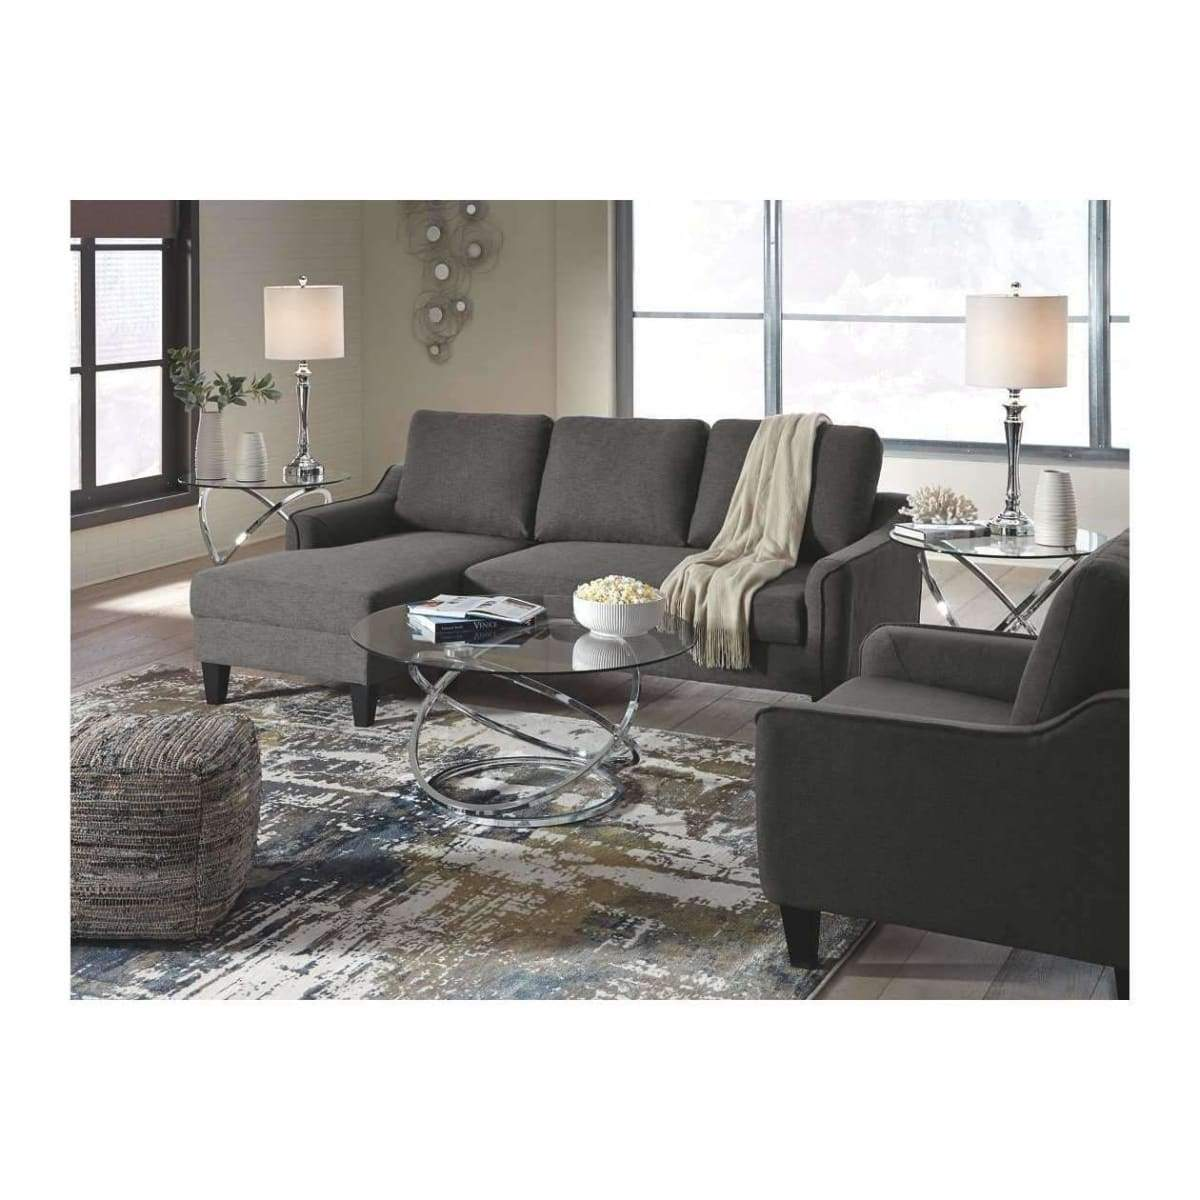 Hollynyx Coffee Table (Set of 3) - COFFEE TABLE